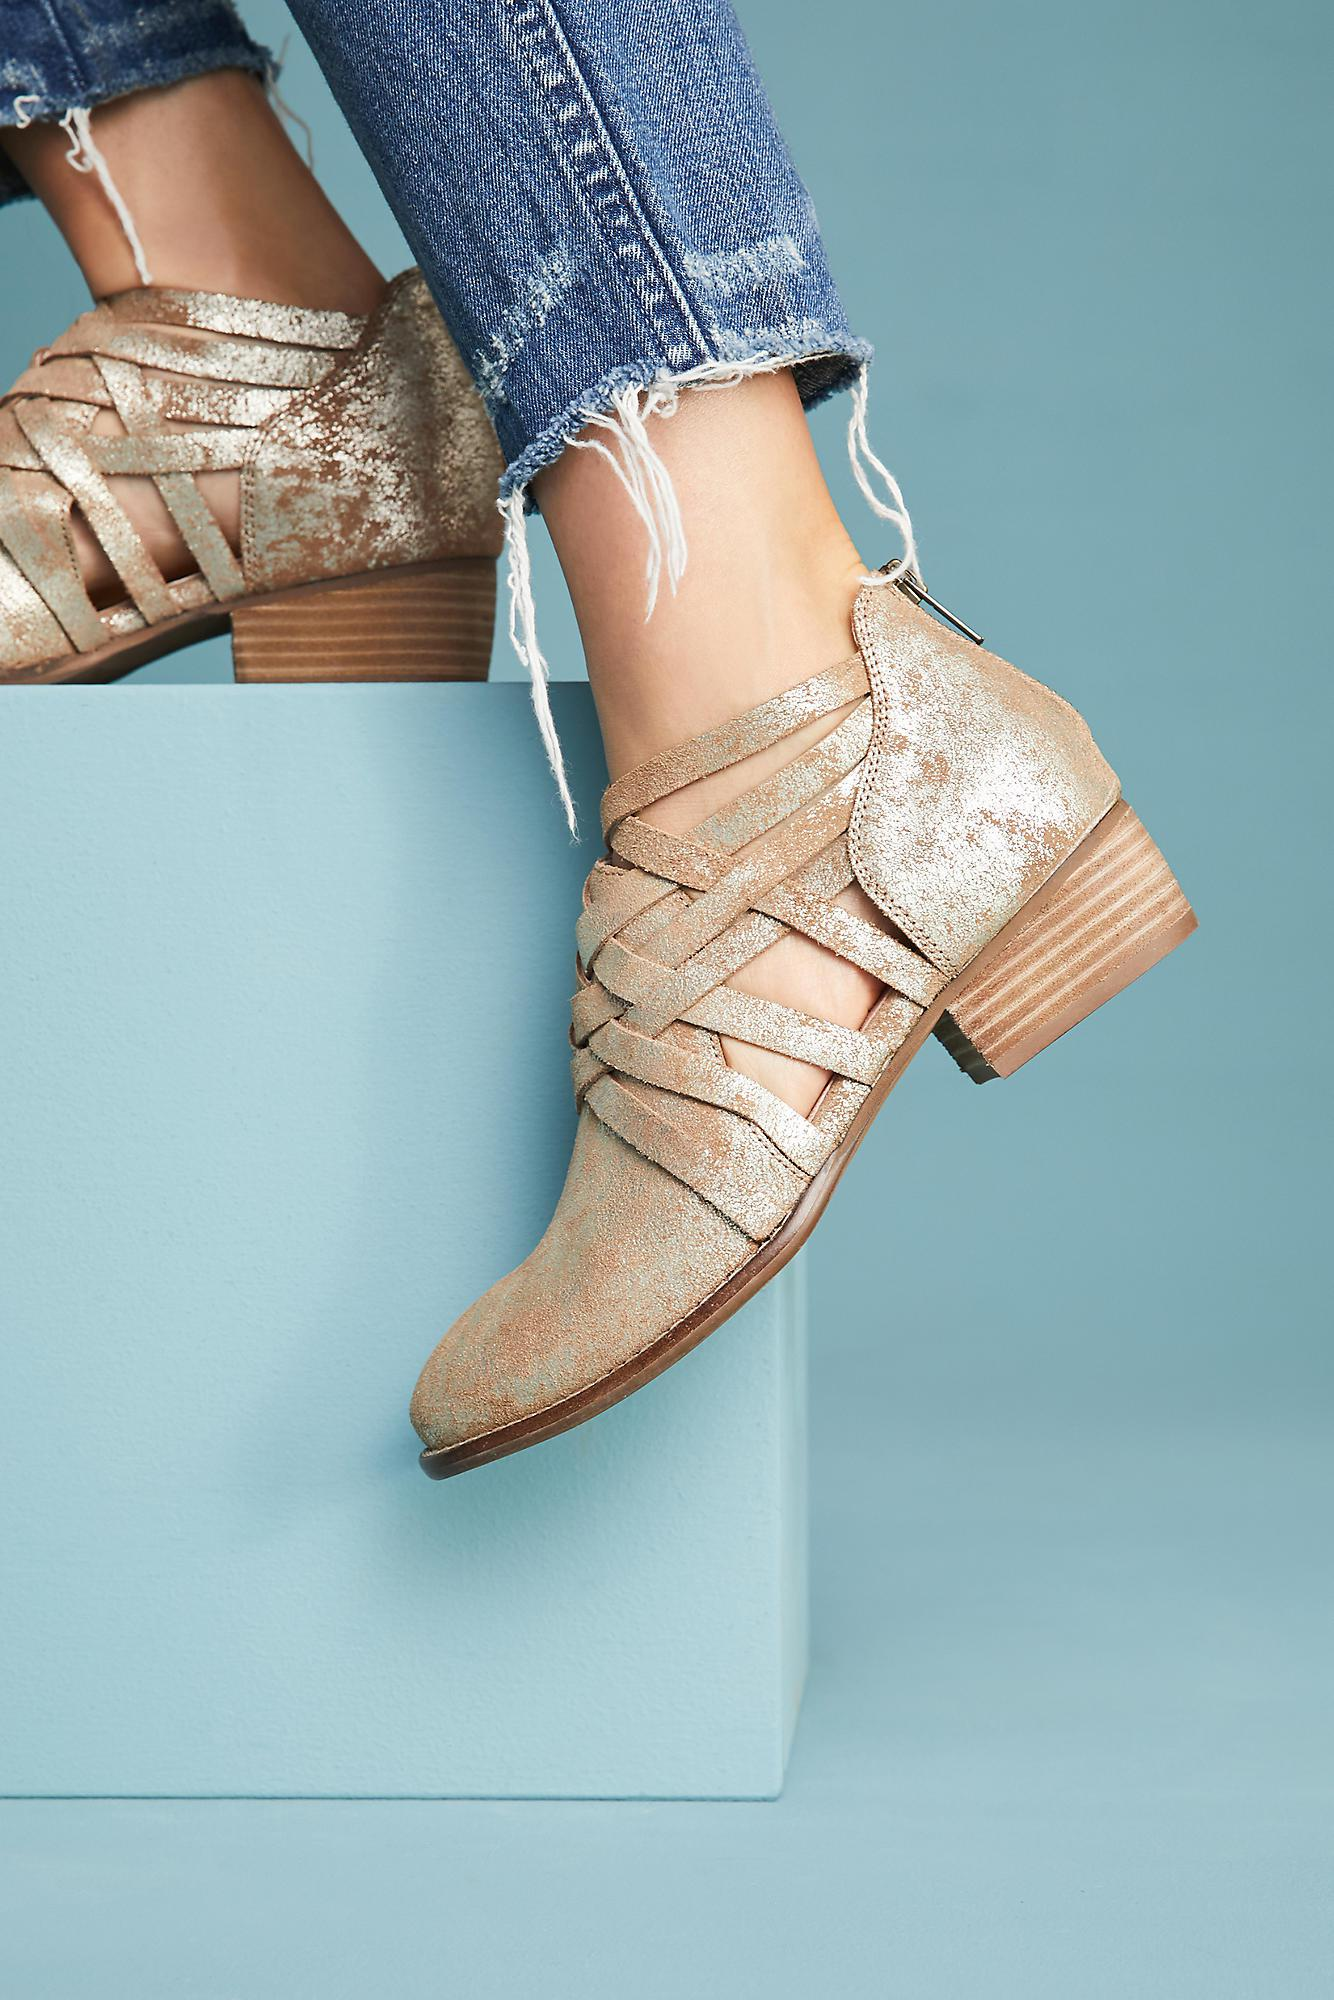 Anthropologie Leather Seychelles So